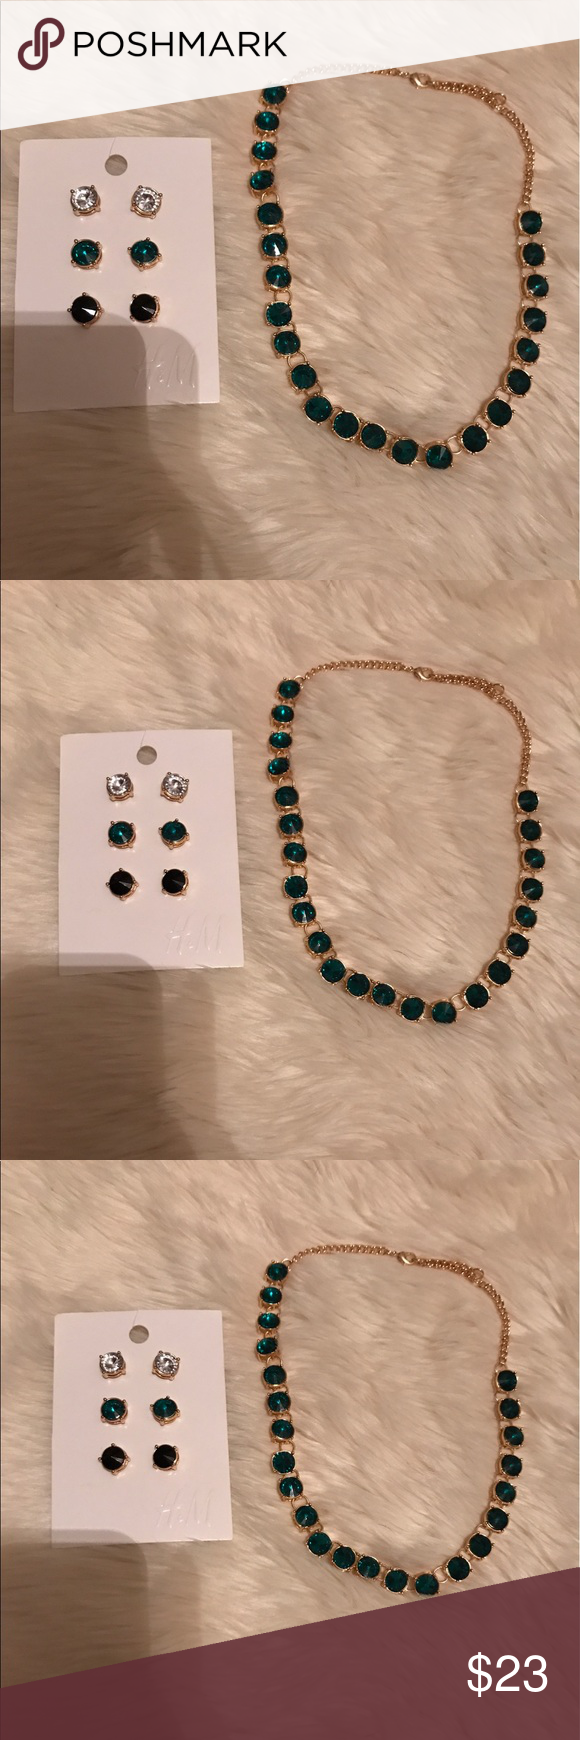 H&M Necklace Never Worn H&M Jewelry